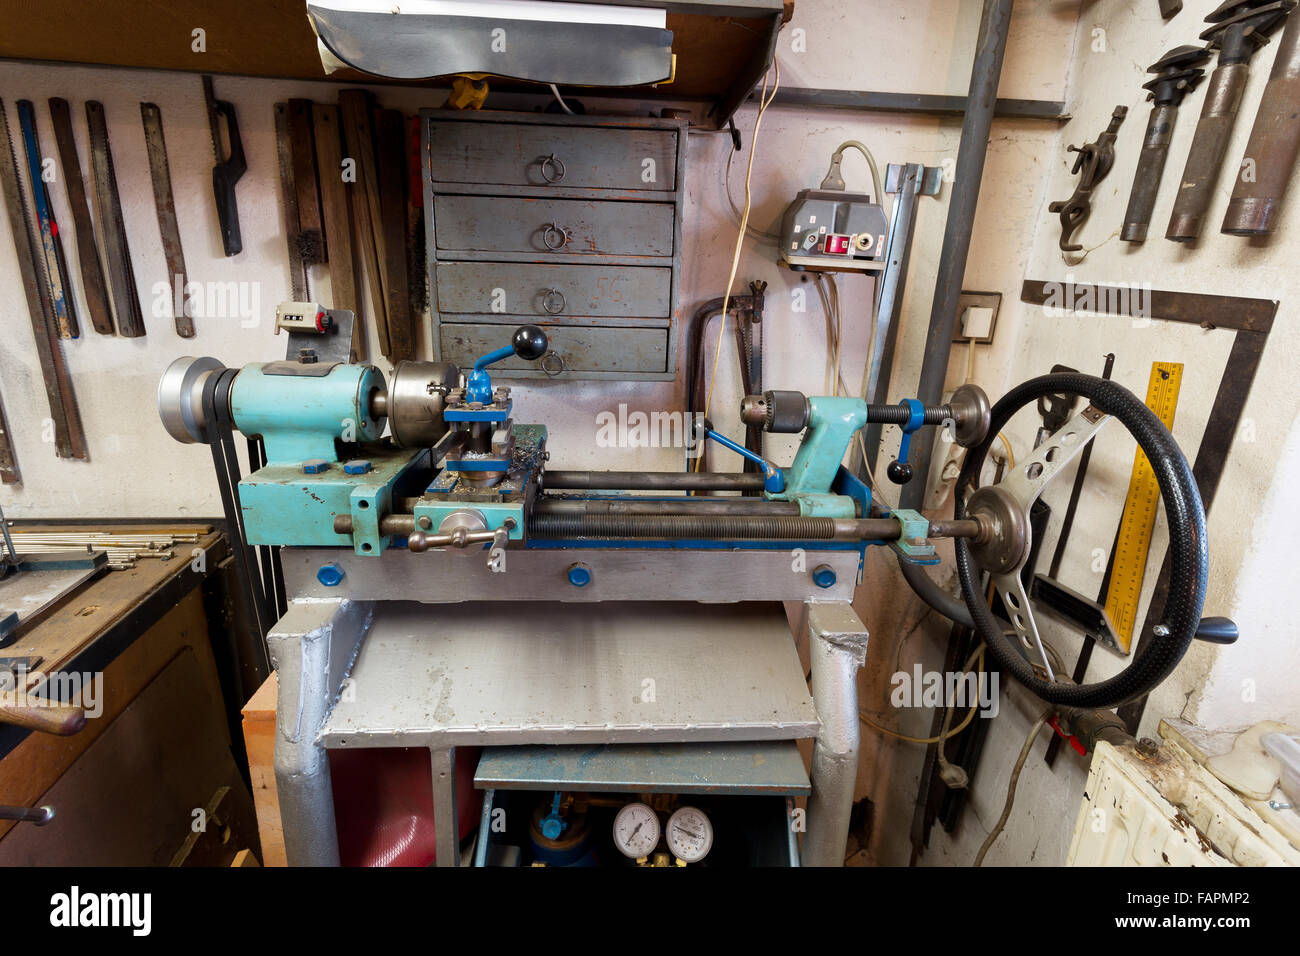 Real Domestic Diy Home Workshop Full Of Tools Untidy